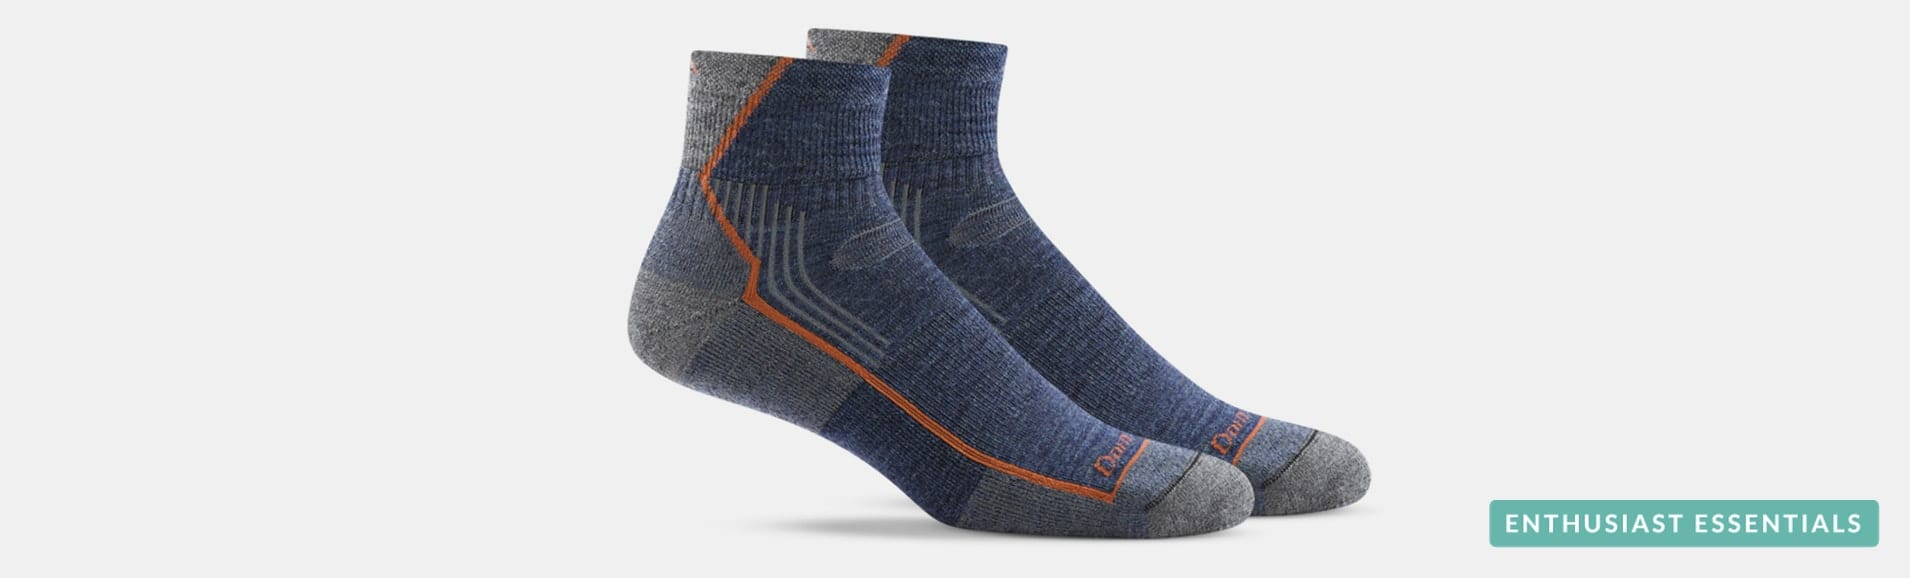 Darn Tough Hiker 1/4 Sock - Get 3 Same or Different Packs for $40.50 with free shipping (Massdrop)